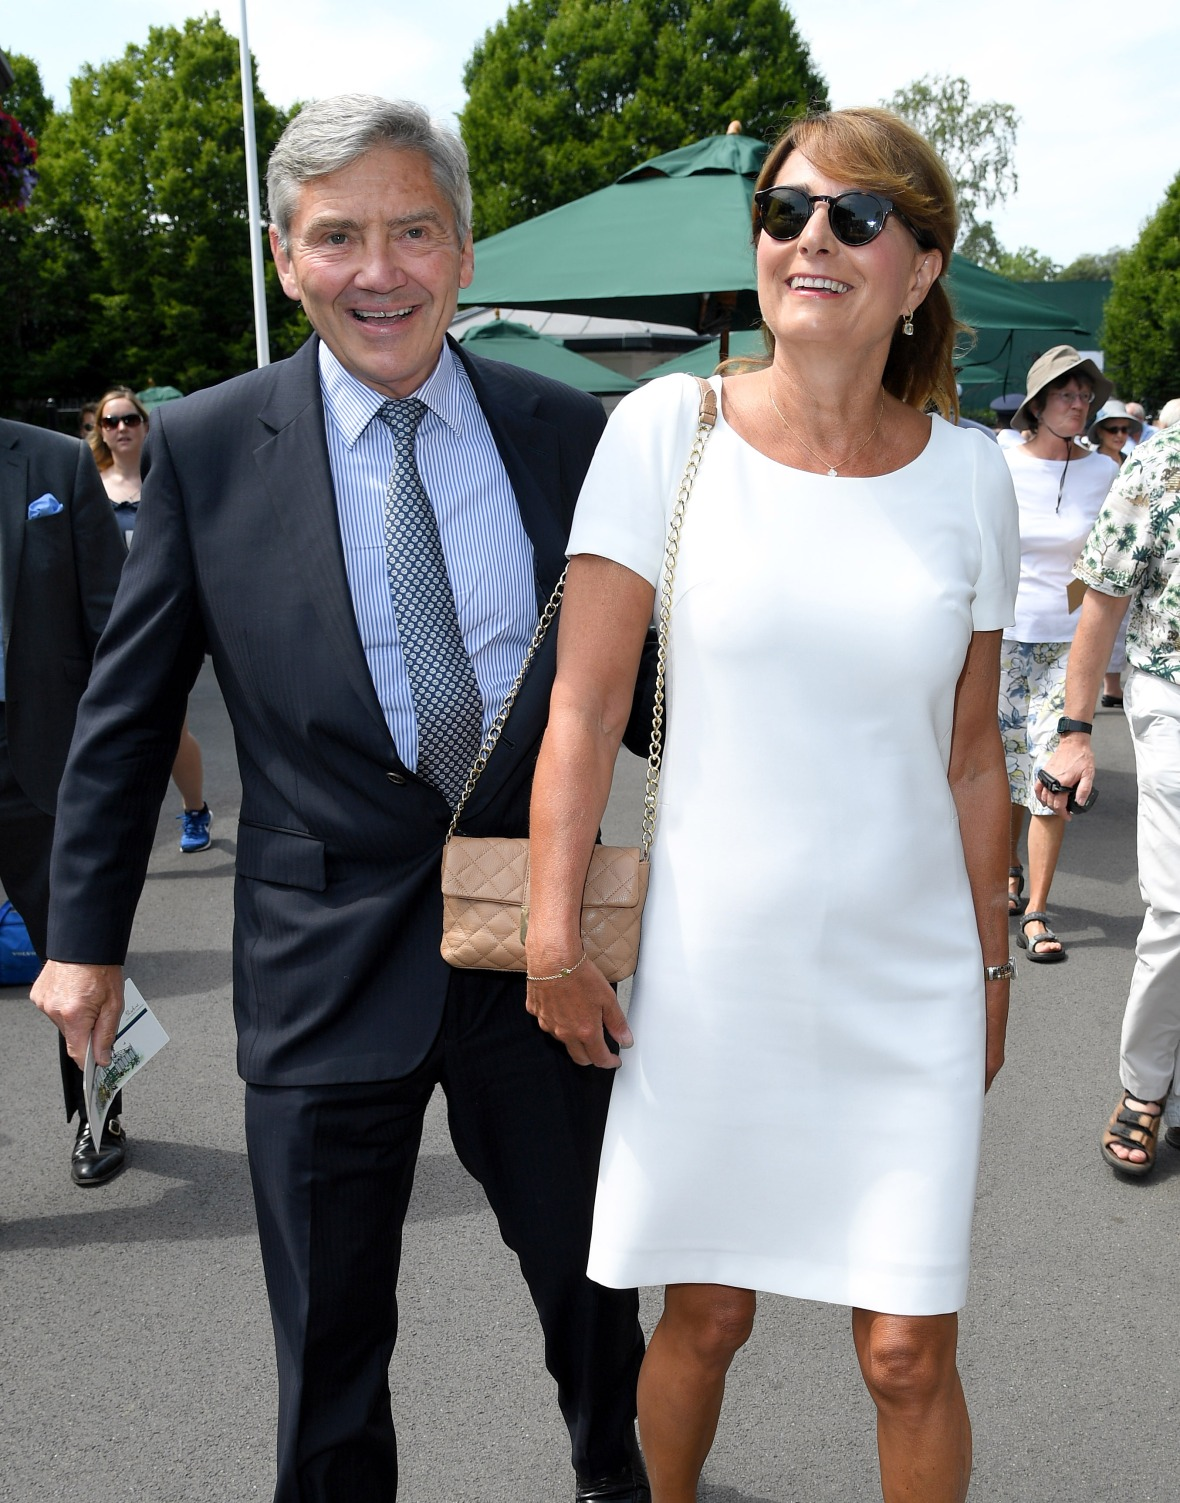 kate middleton's parents getty images